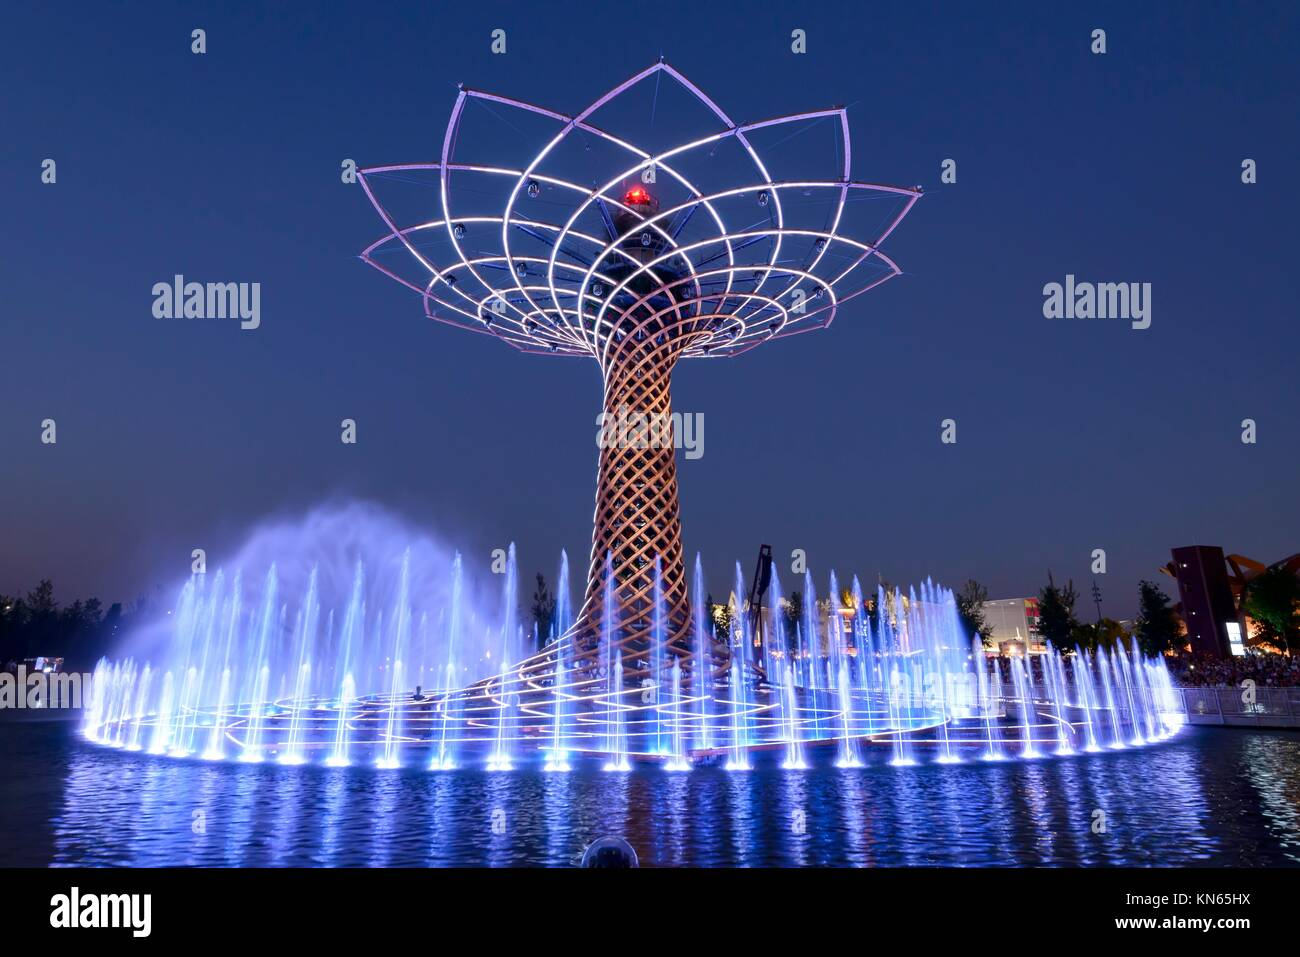 MILAN, ITALY - jun 30: EXPO 2015, night view of white beams and gushes at the lights show on the fair symbol structure - Stock Image